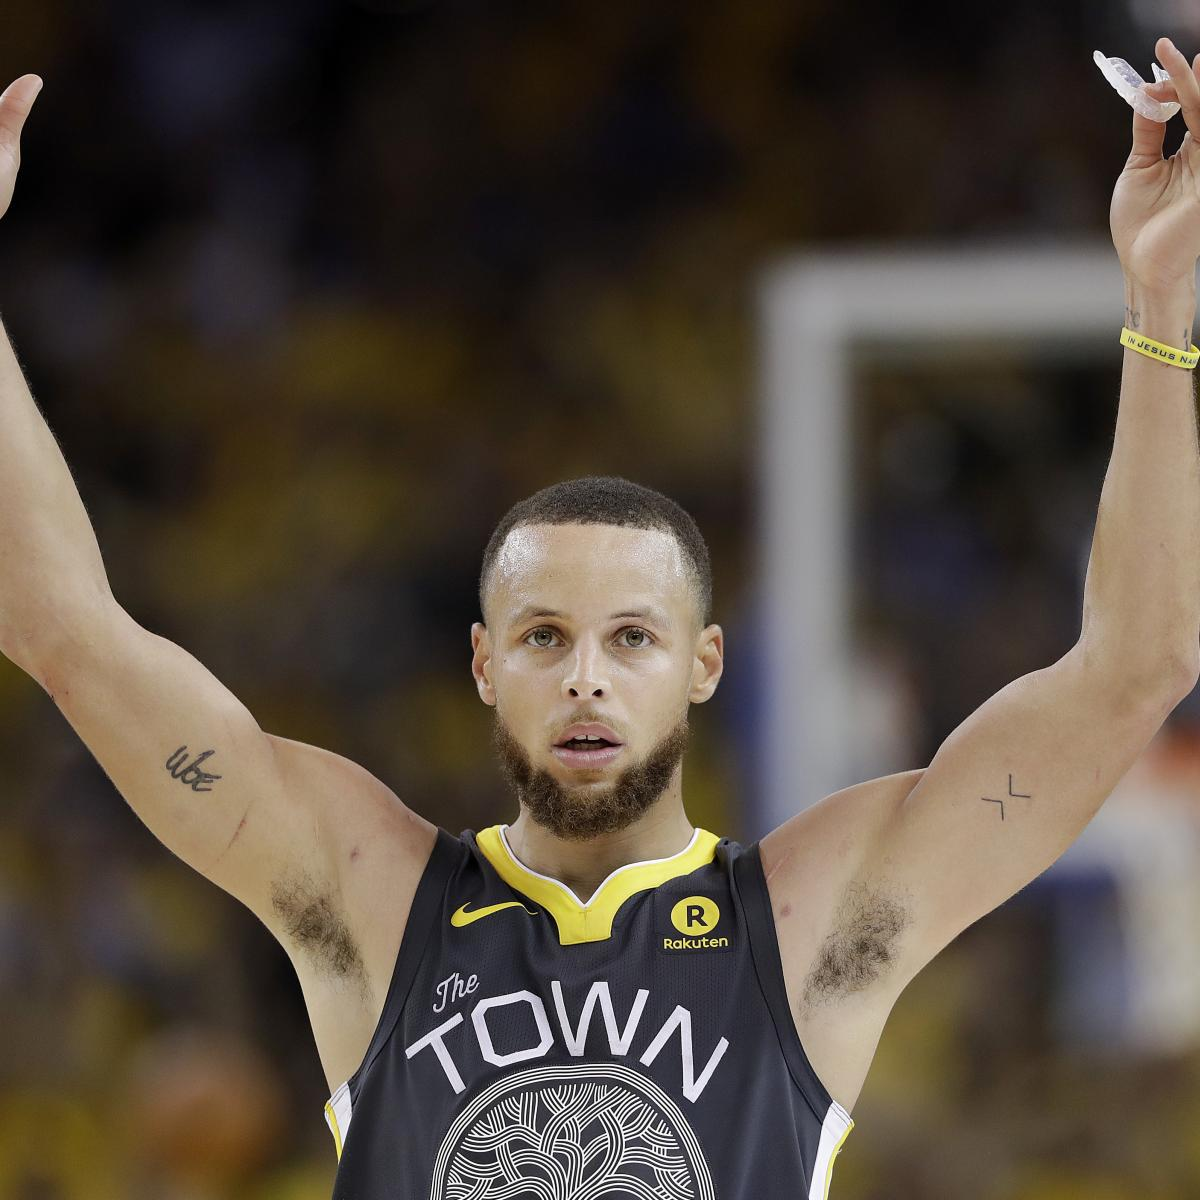 Warriors Come Out And Play Movie Cast: Report: Stephen Curry To Executive Produce Faith-Based